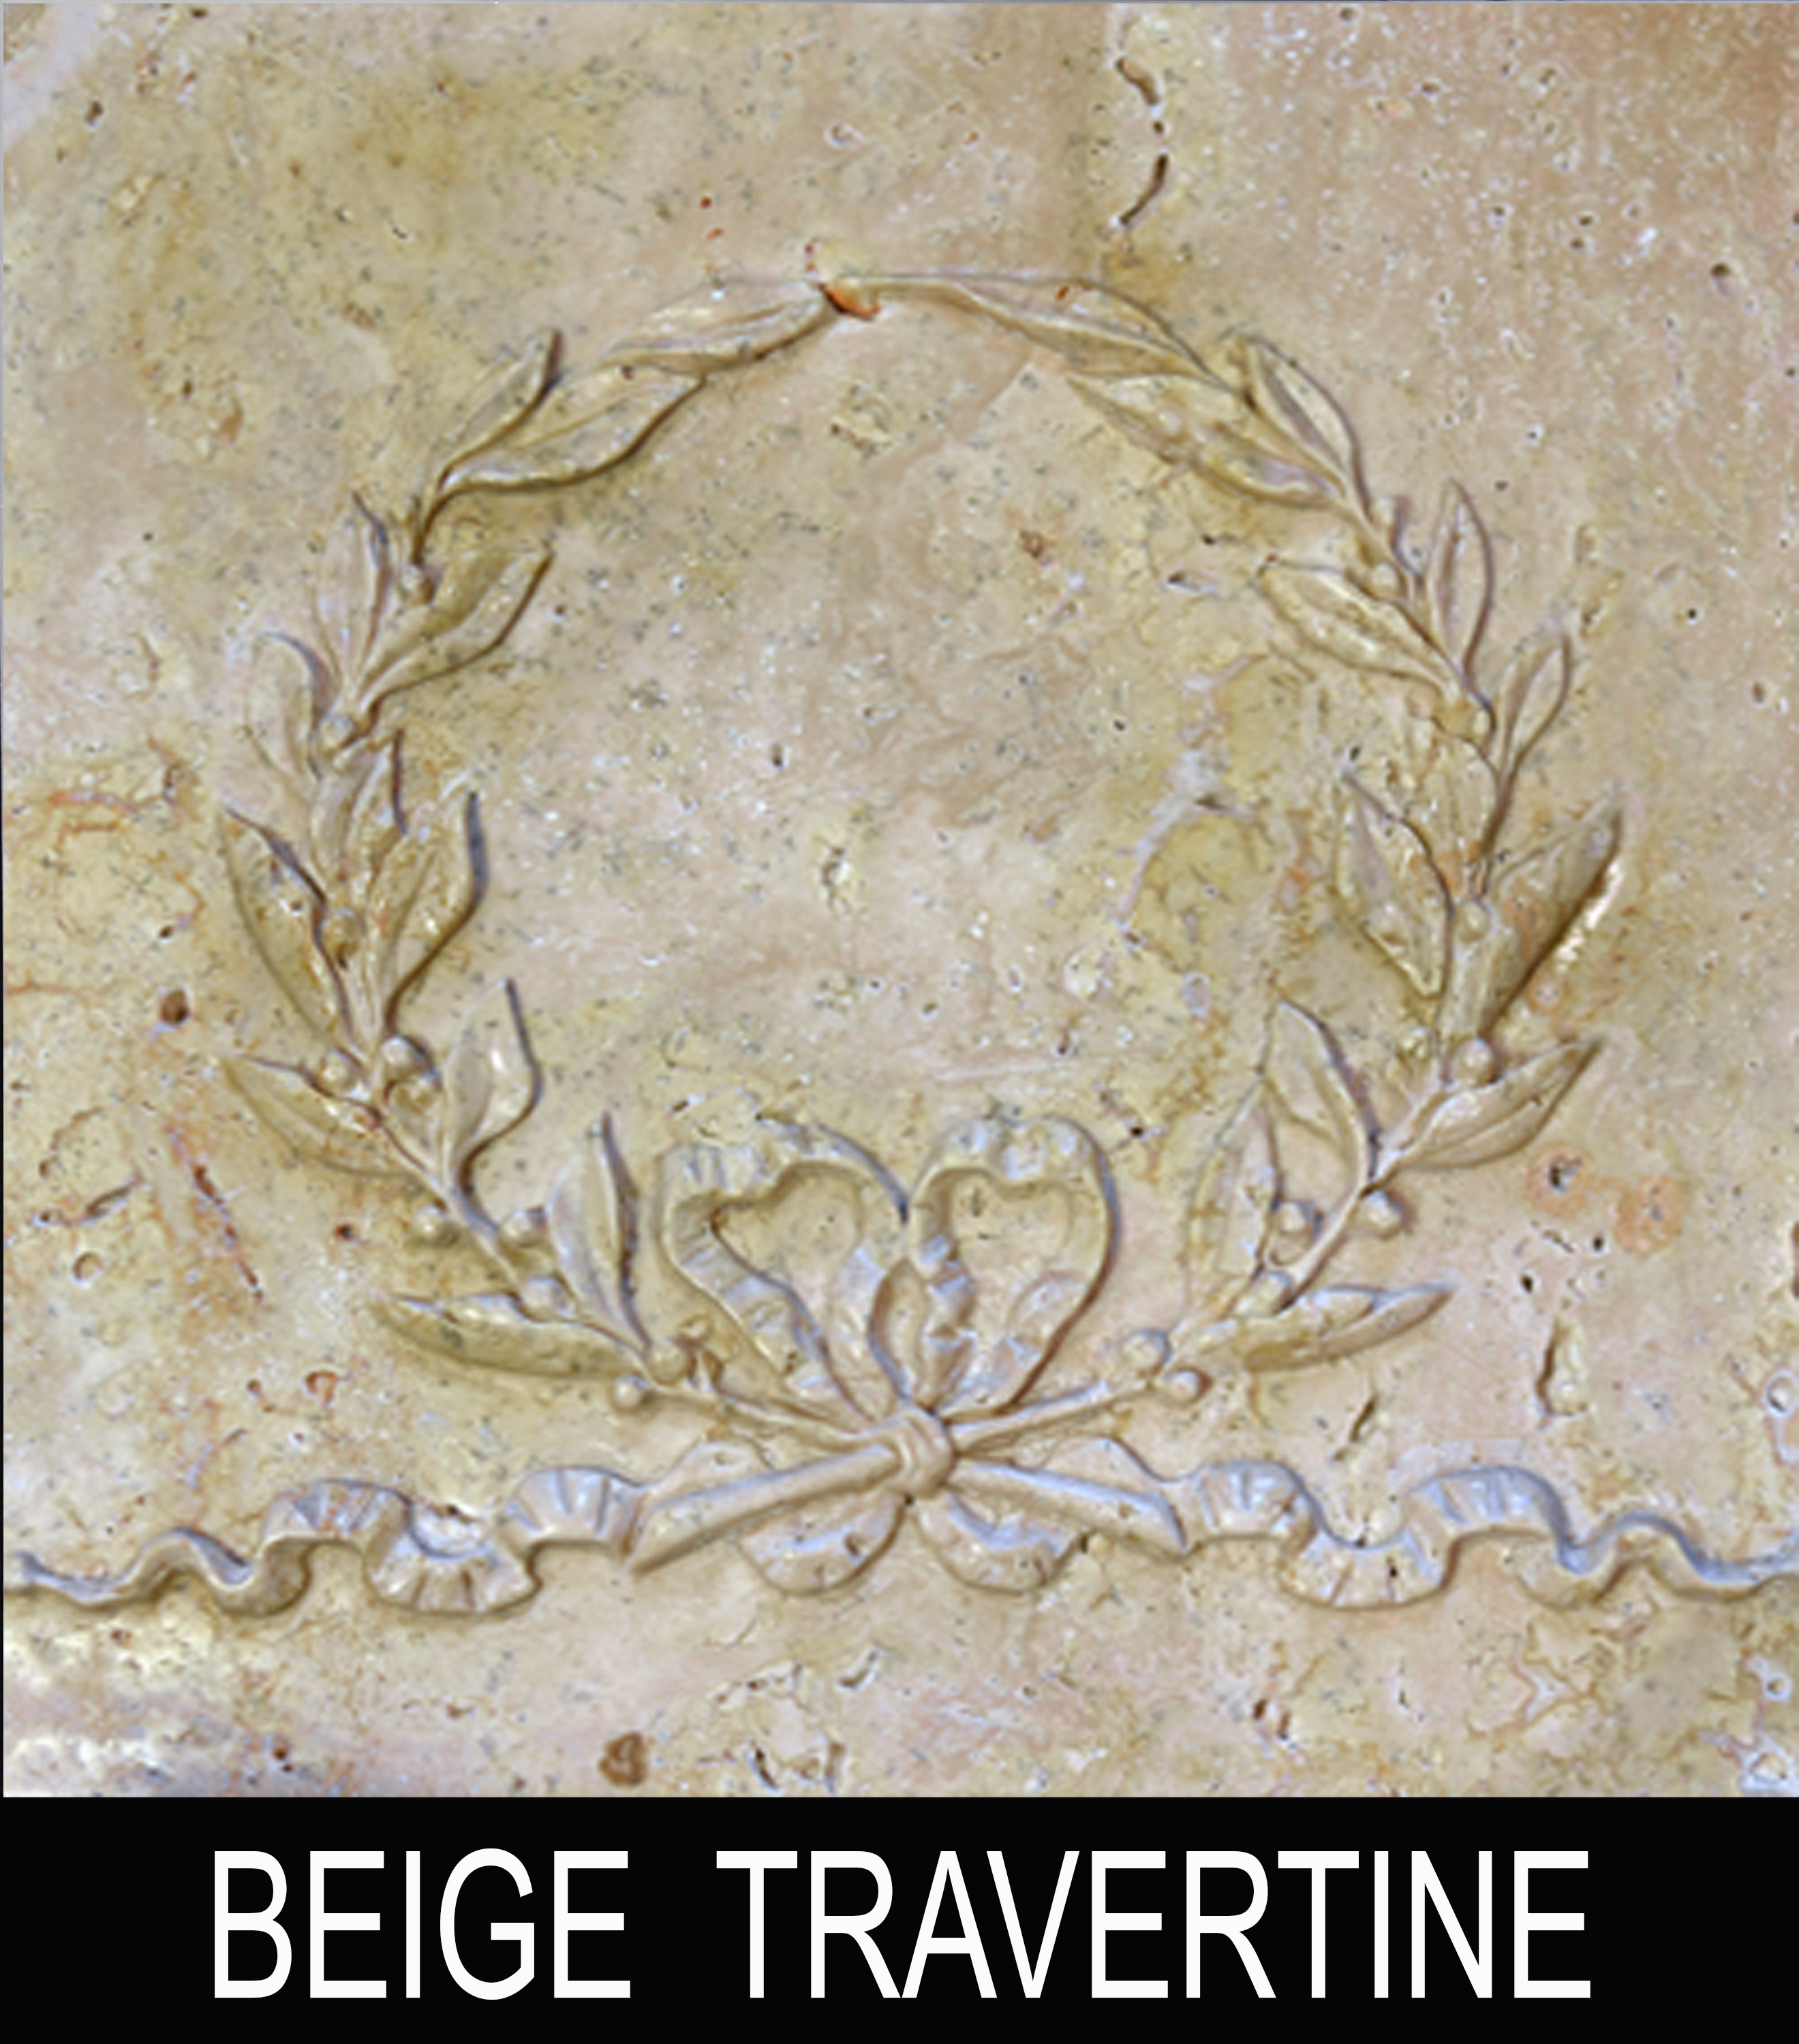 beige-travertine-thumbnail.jpg